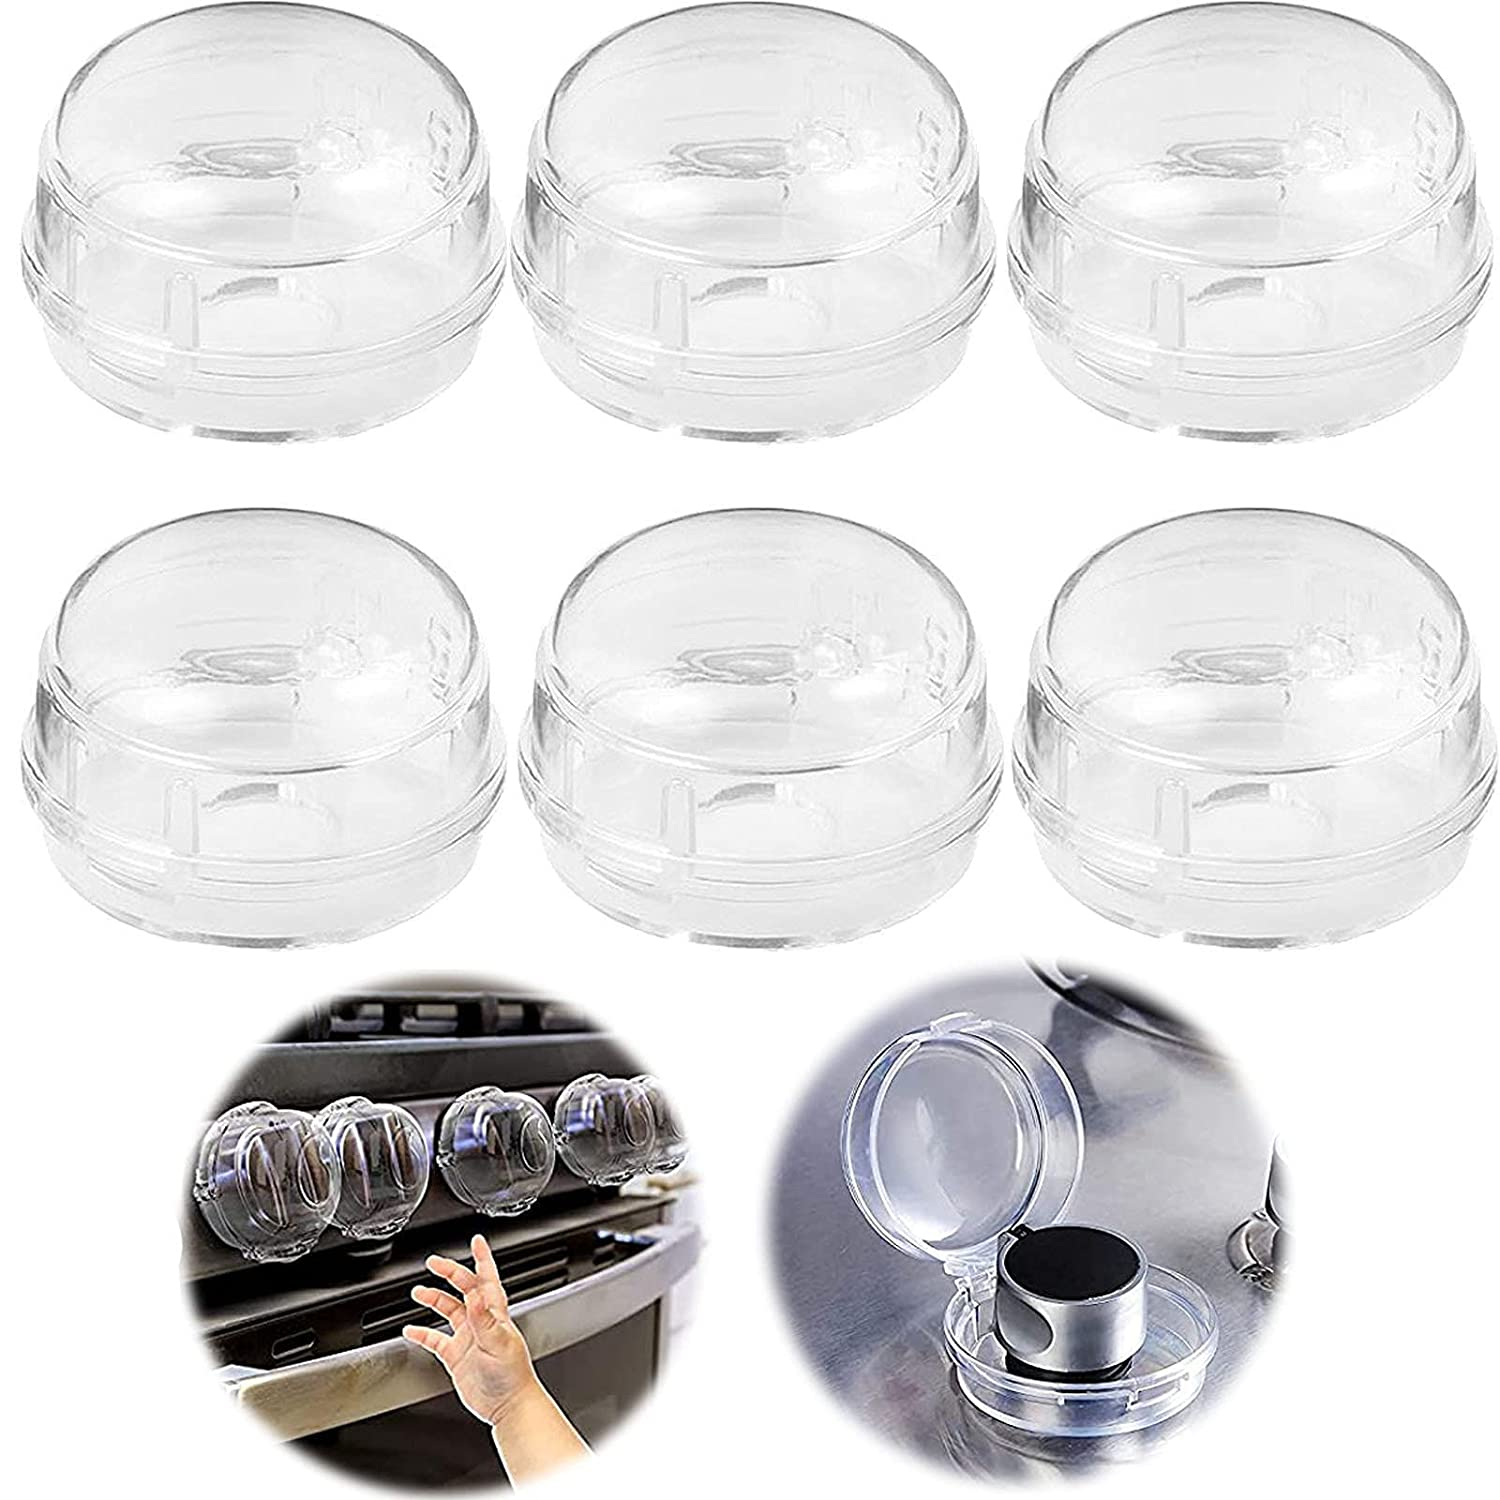 Clear Stove Knob Covers for Child Safety, 6 Pcs Child Safety Guards Baby Proof Stove Oven Locks, Gas Stoves for Kitchen, Switch Cover for Kids, Baby, Toddler